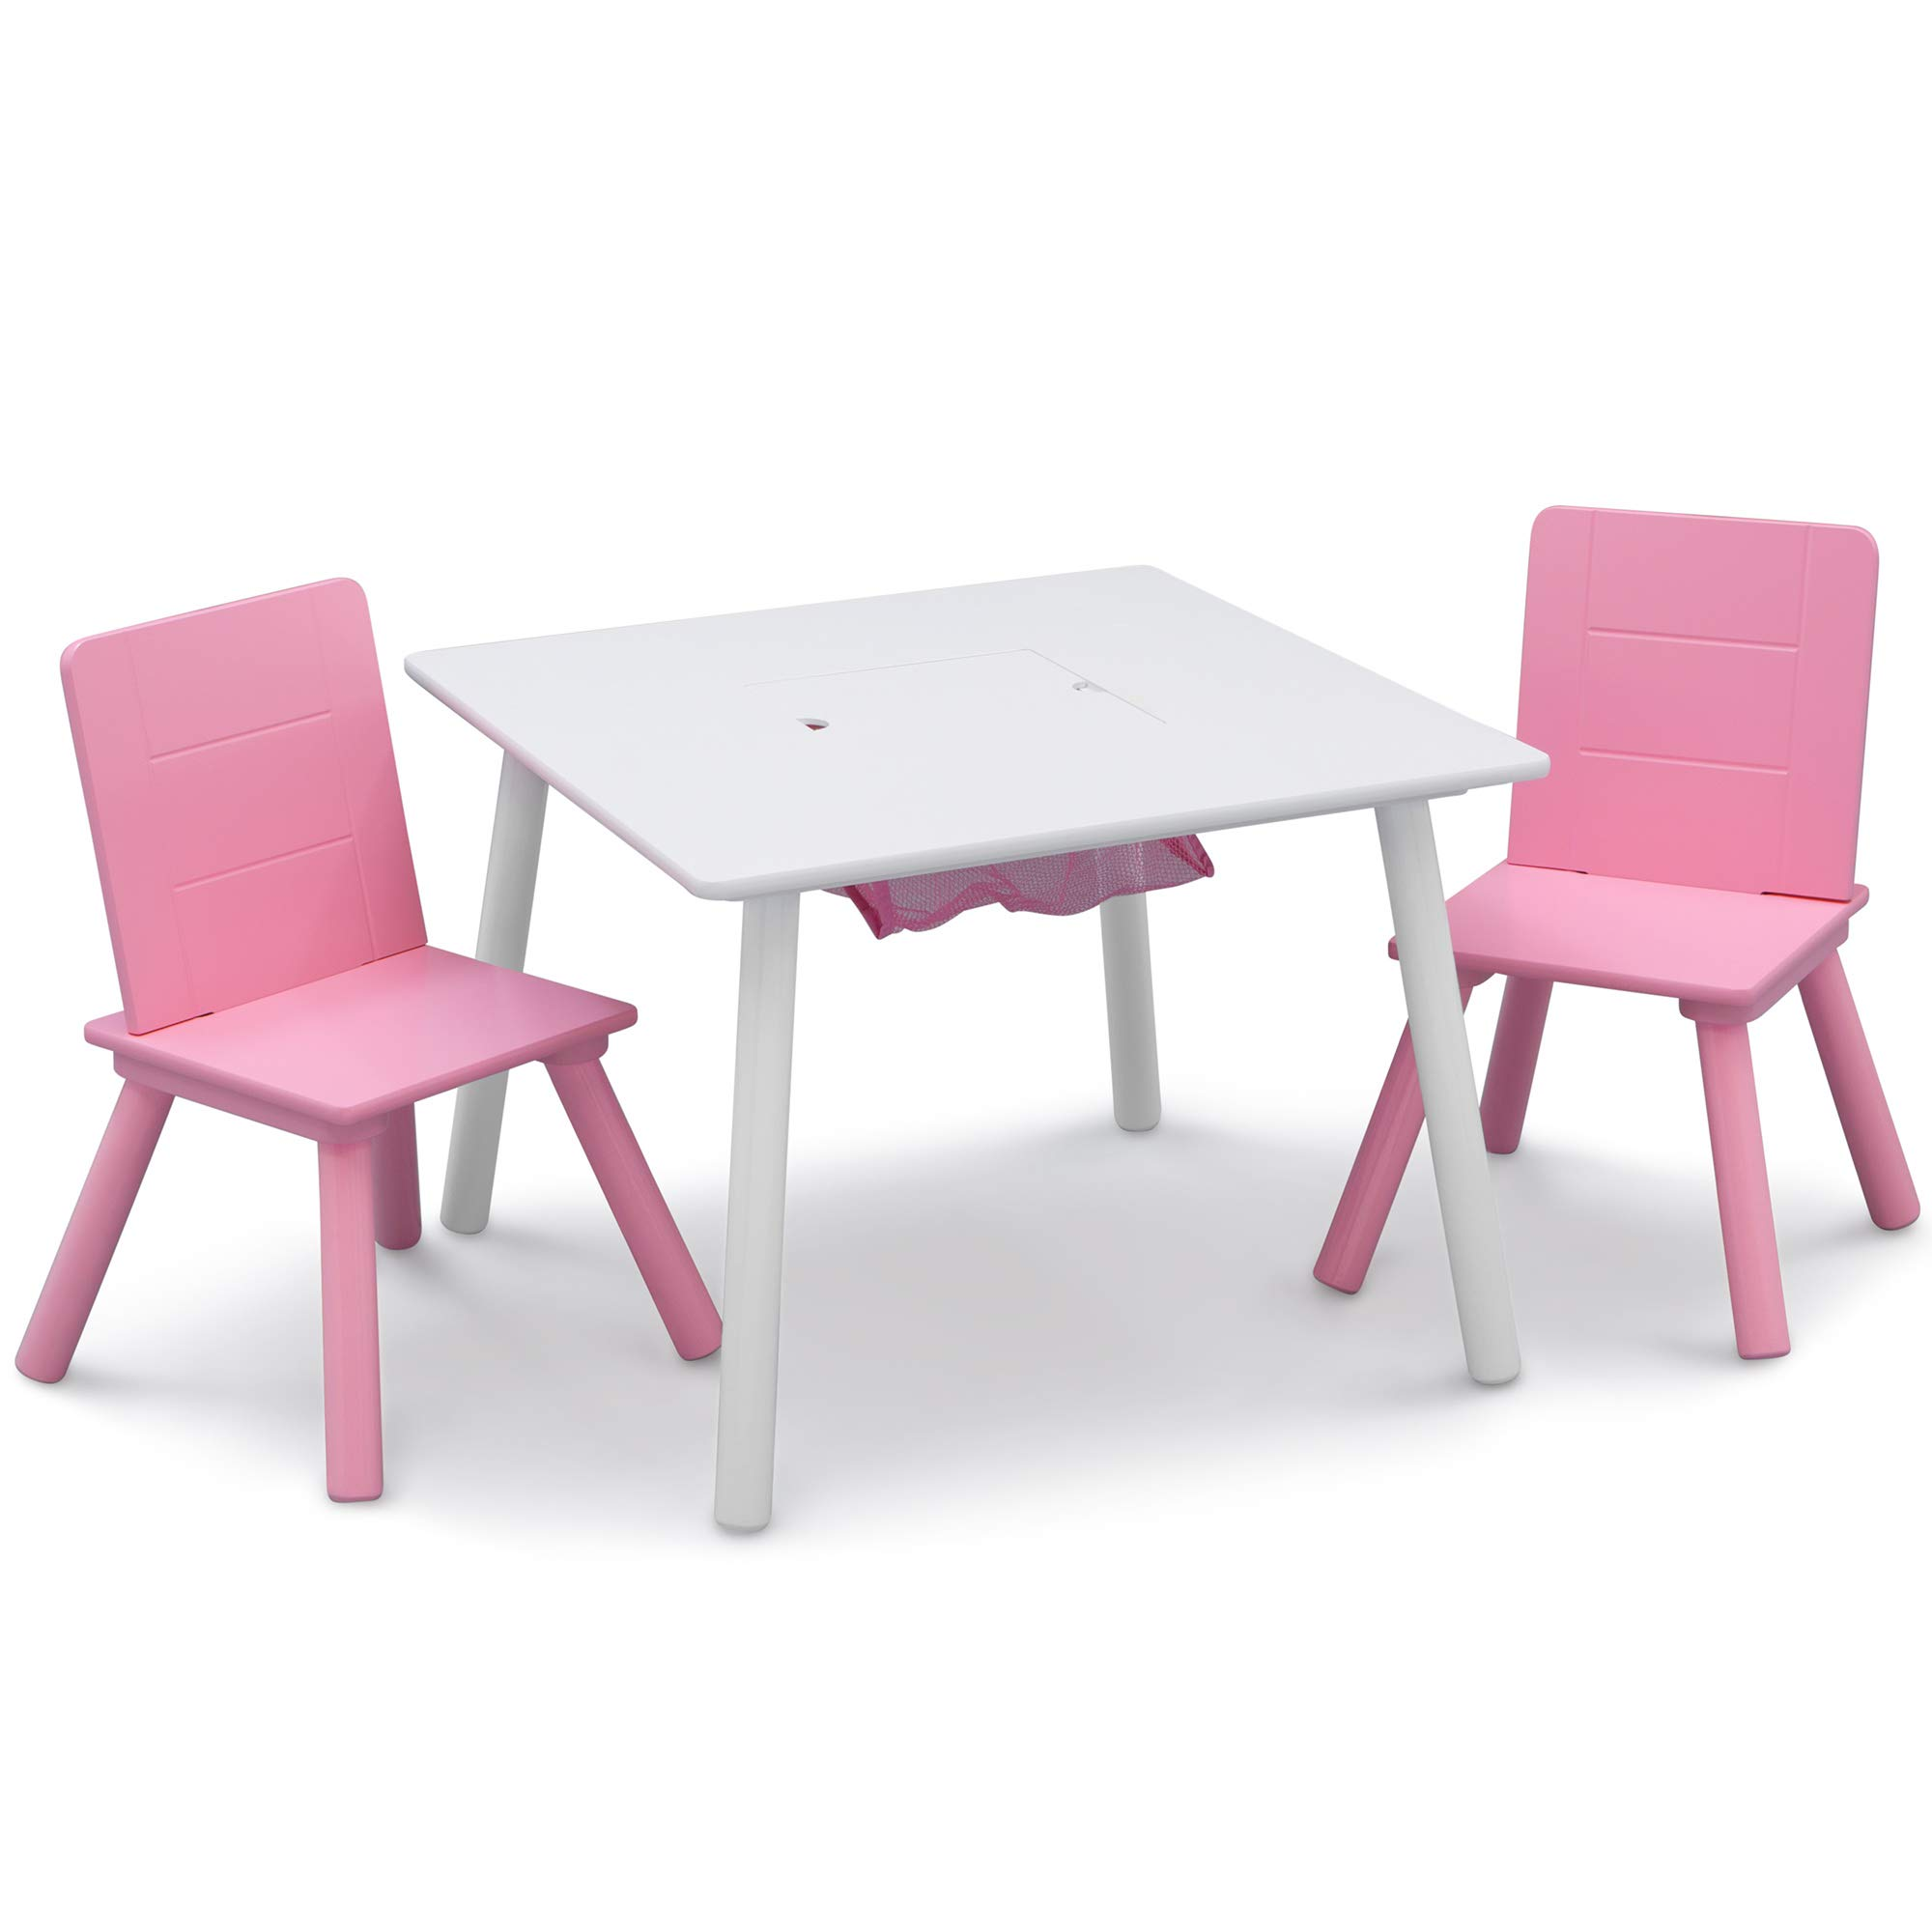 Delta Children Kids Table & Chair Set with Storage (2 Chairs Included), White/Pink by Delta Children